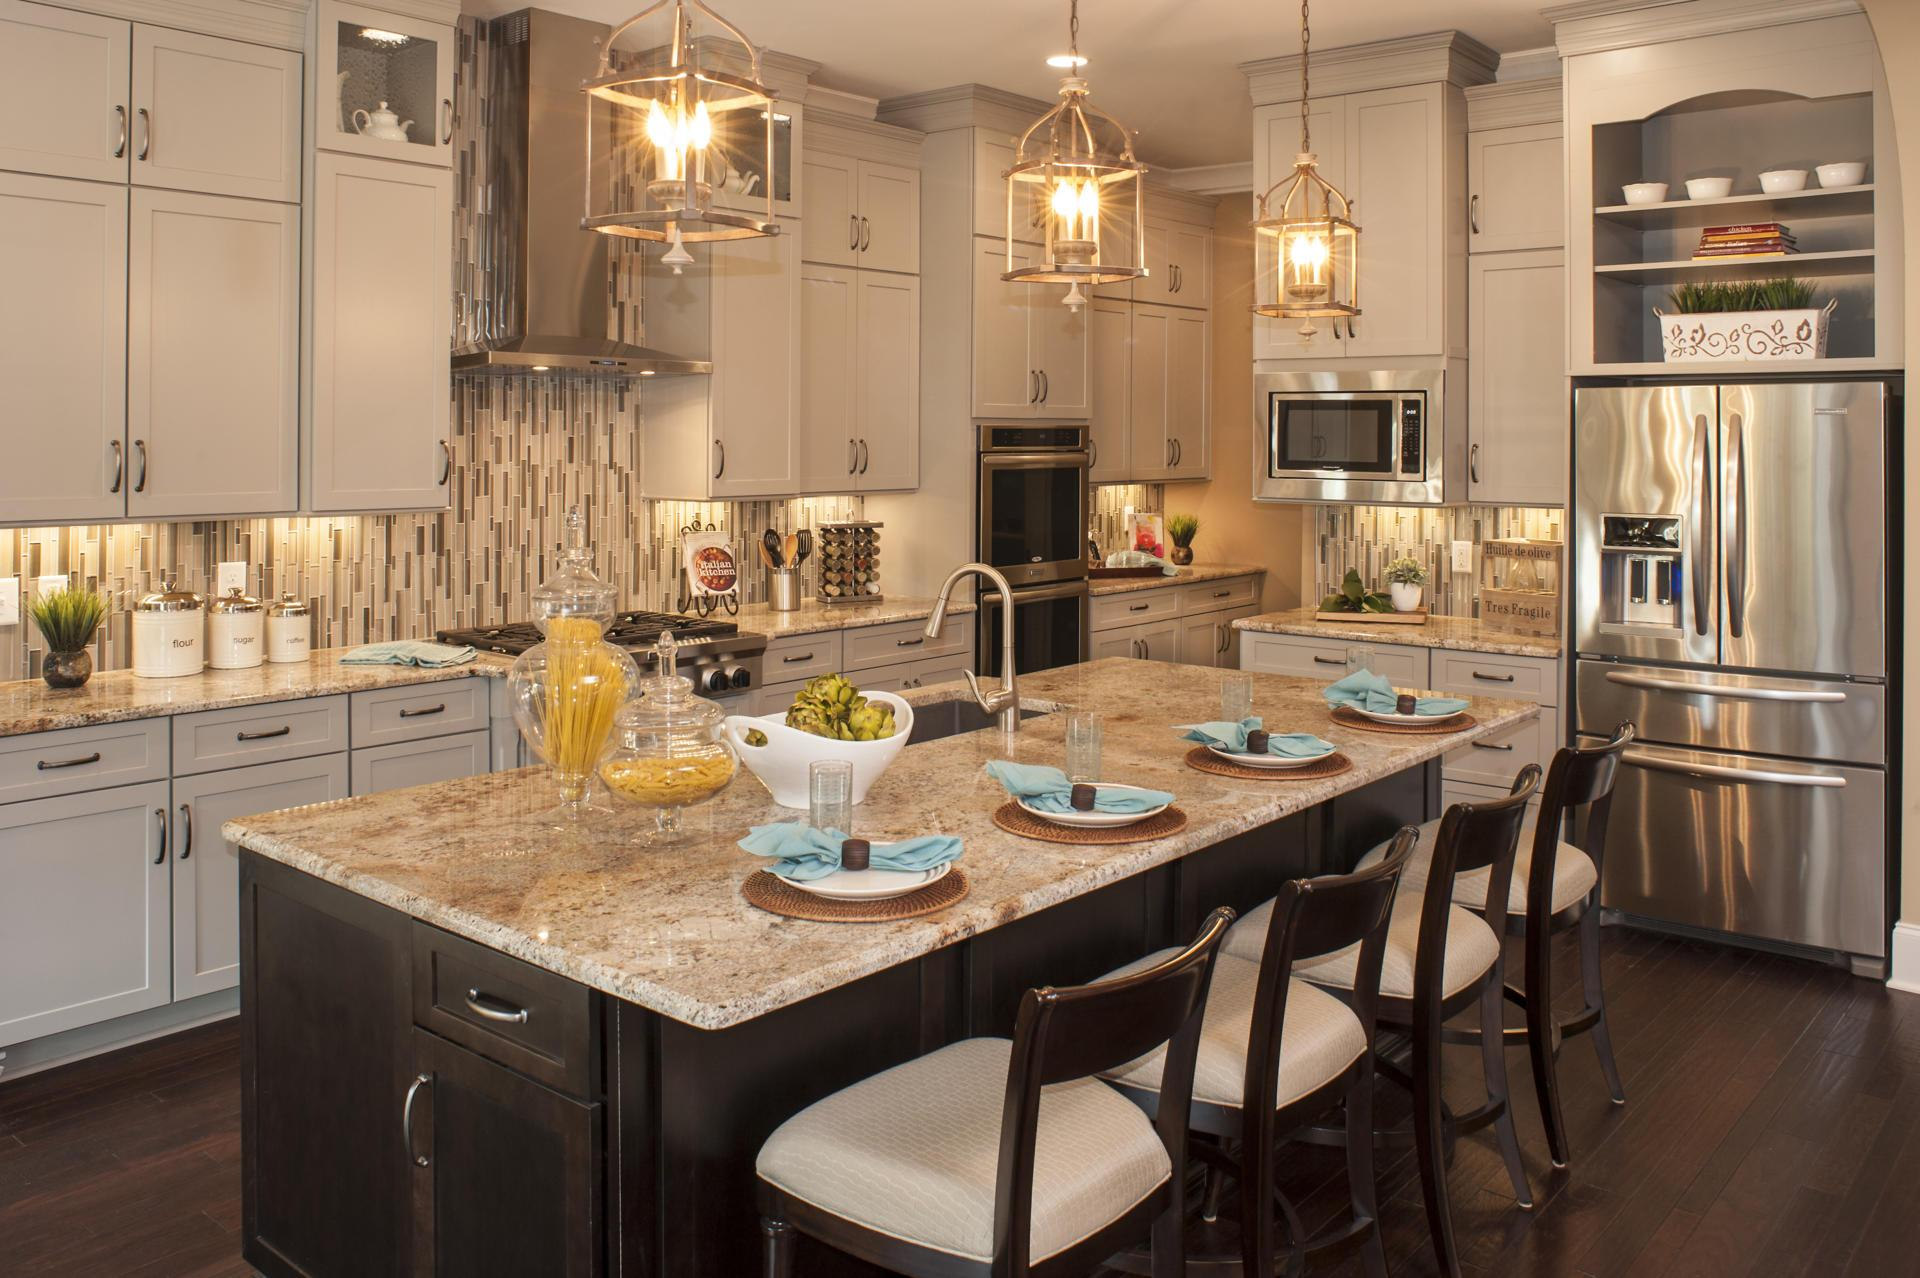 Kitchen featured in the Colinas II By Drees Homes in Nashville, TN